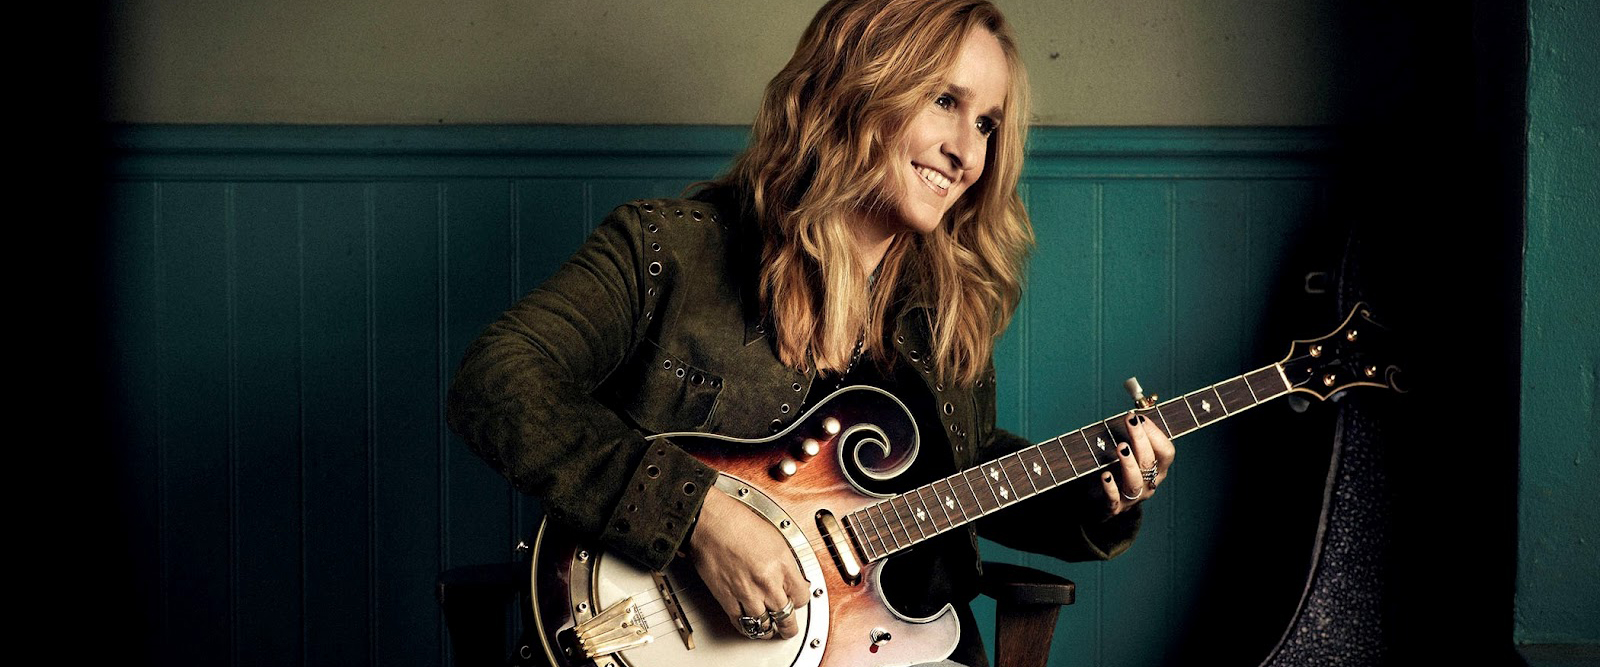 melissa etheridge dating 2014 Melissa etheridge and linda wallem are married the couple were thrilled to be able to tie the knot in a beautiful outdoor ceremony on sunday.